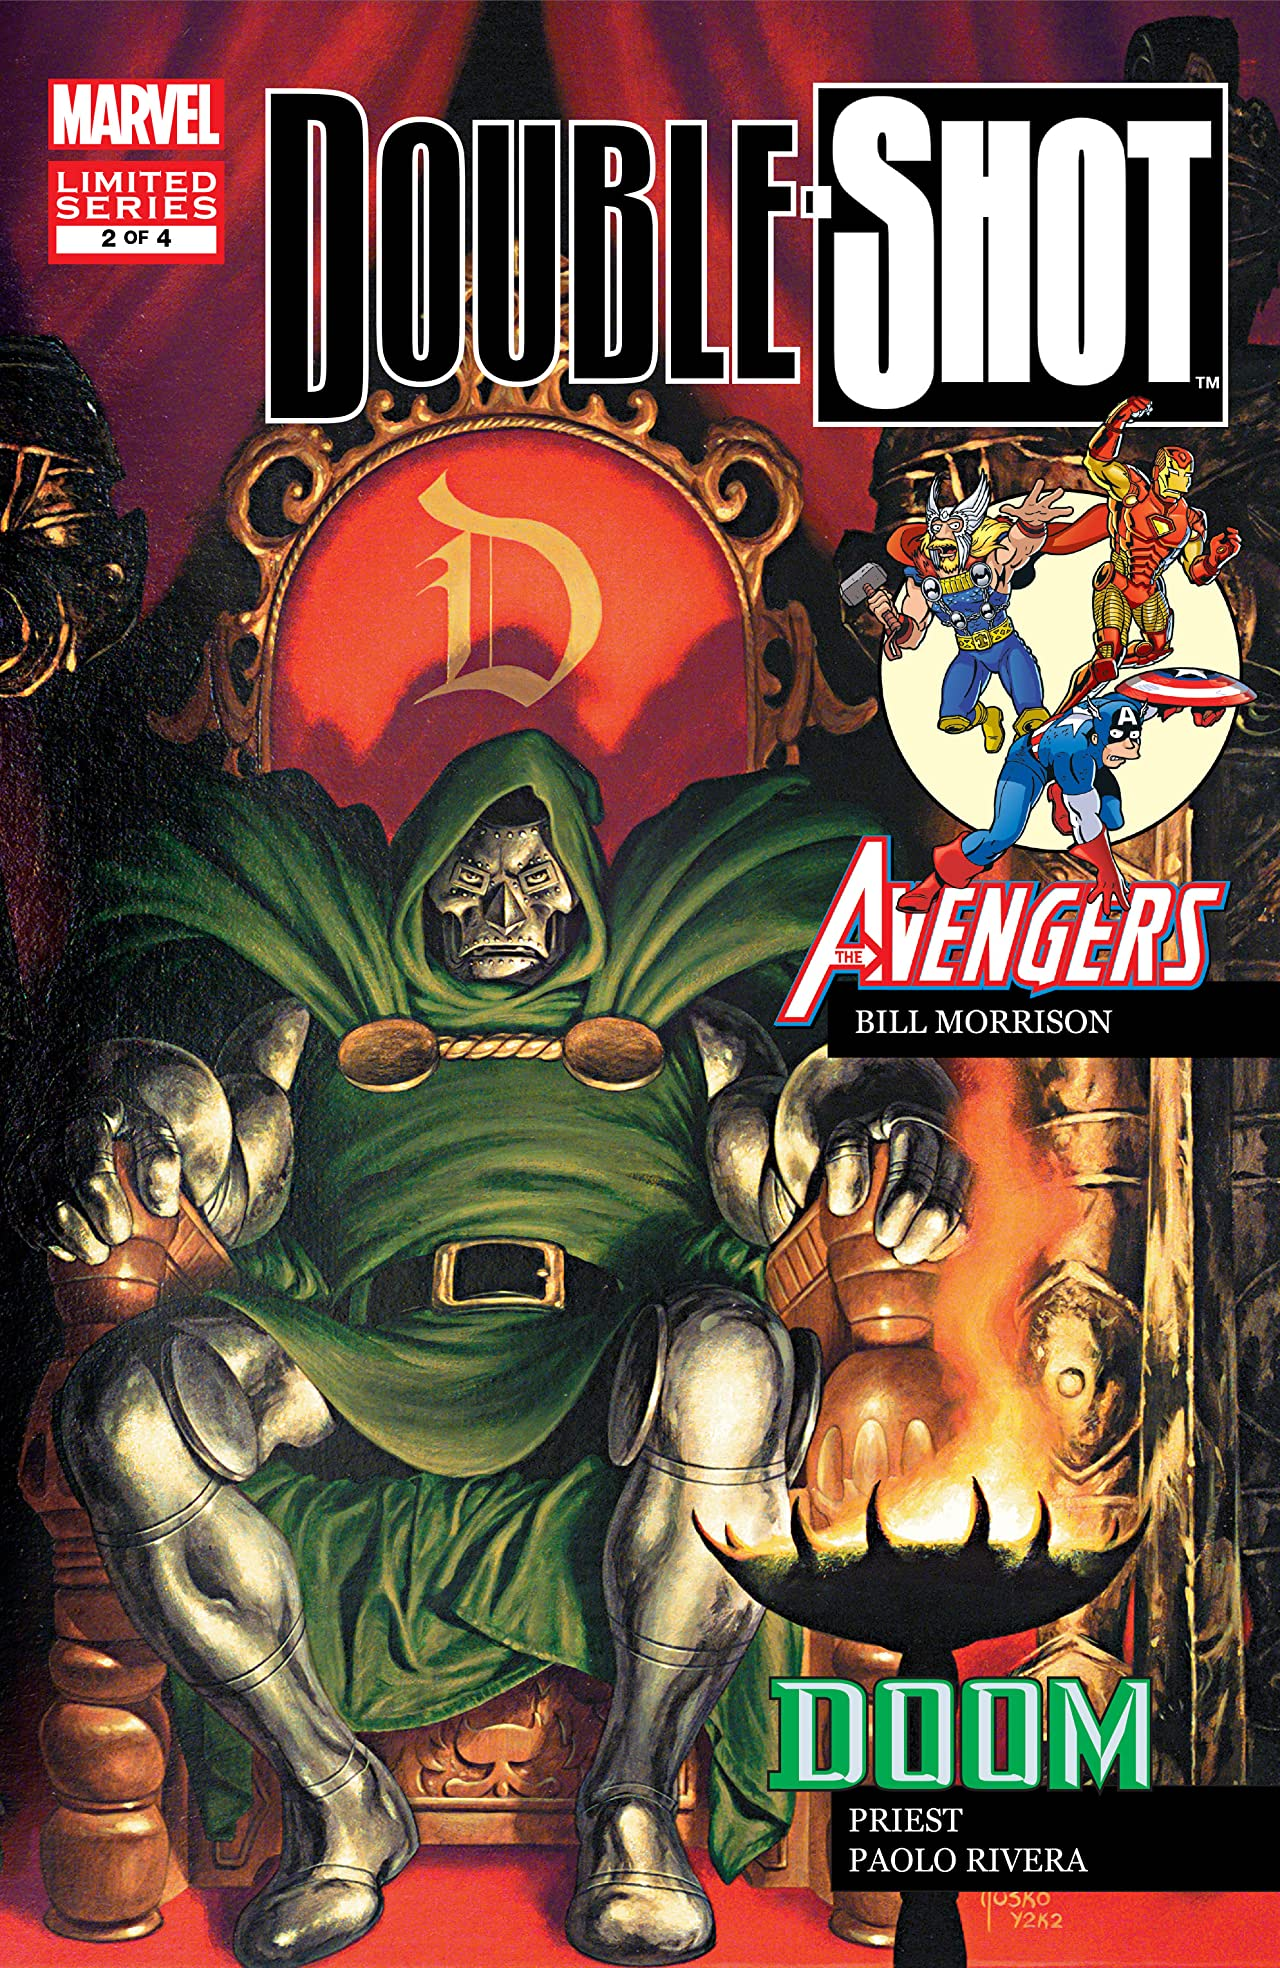 Marvel Double Shot (2003) #2 (of 4)